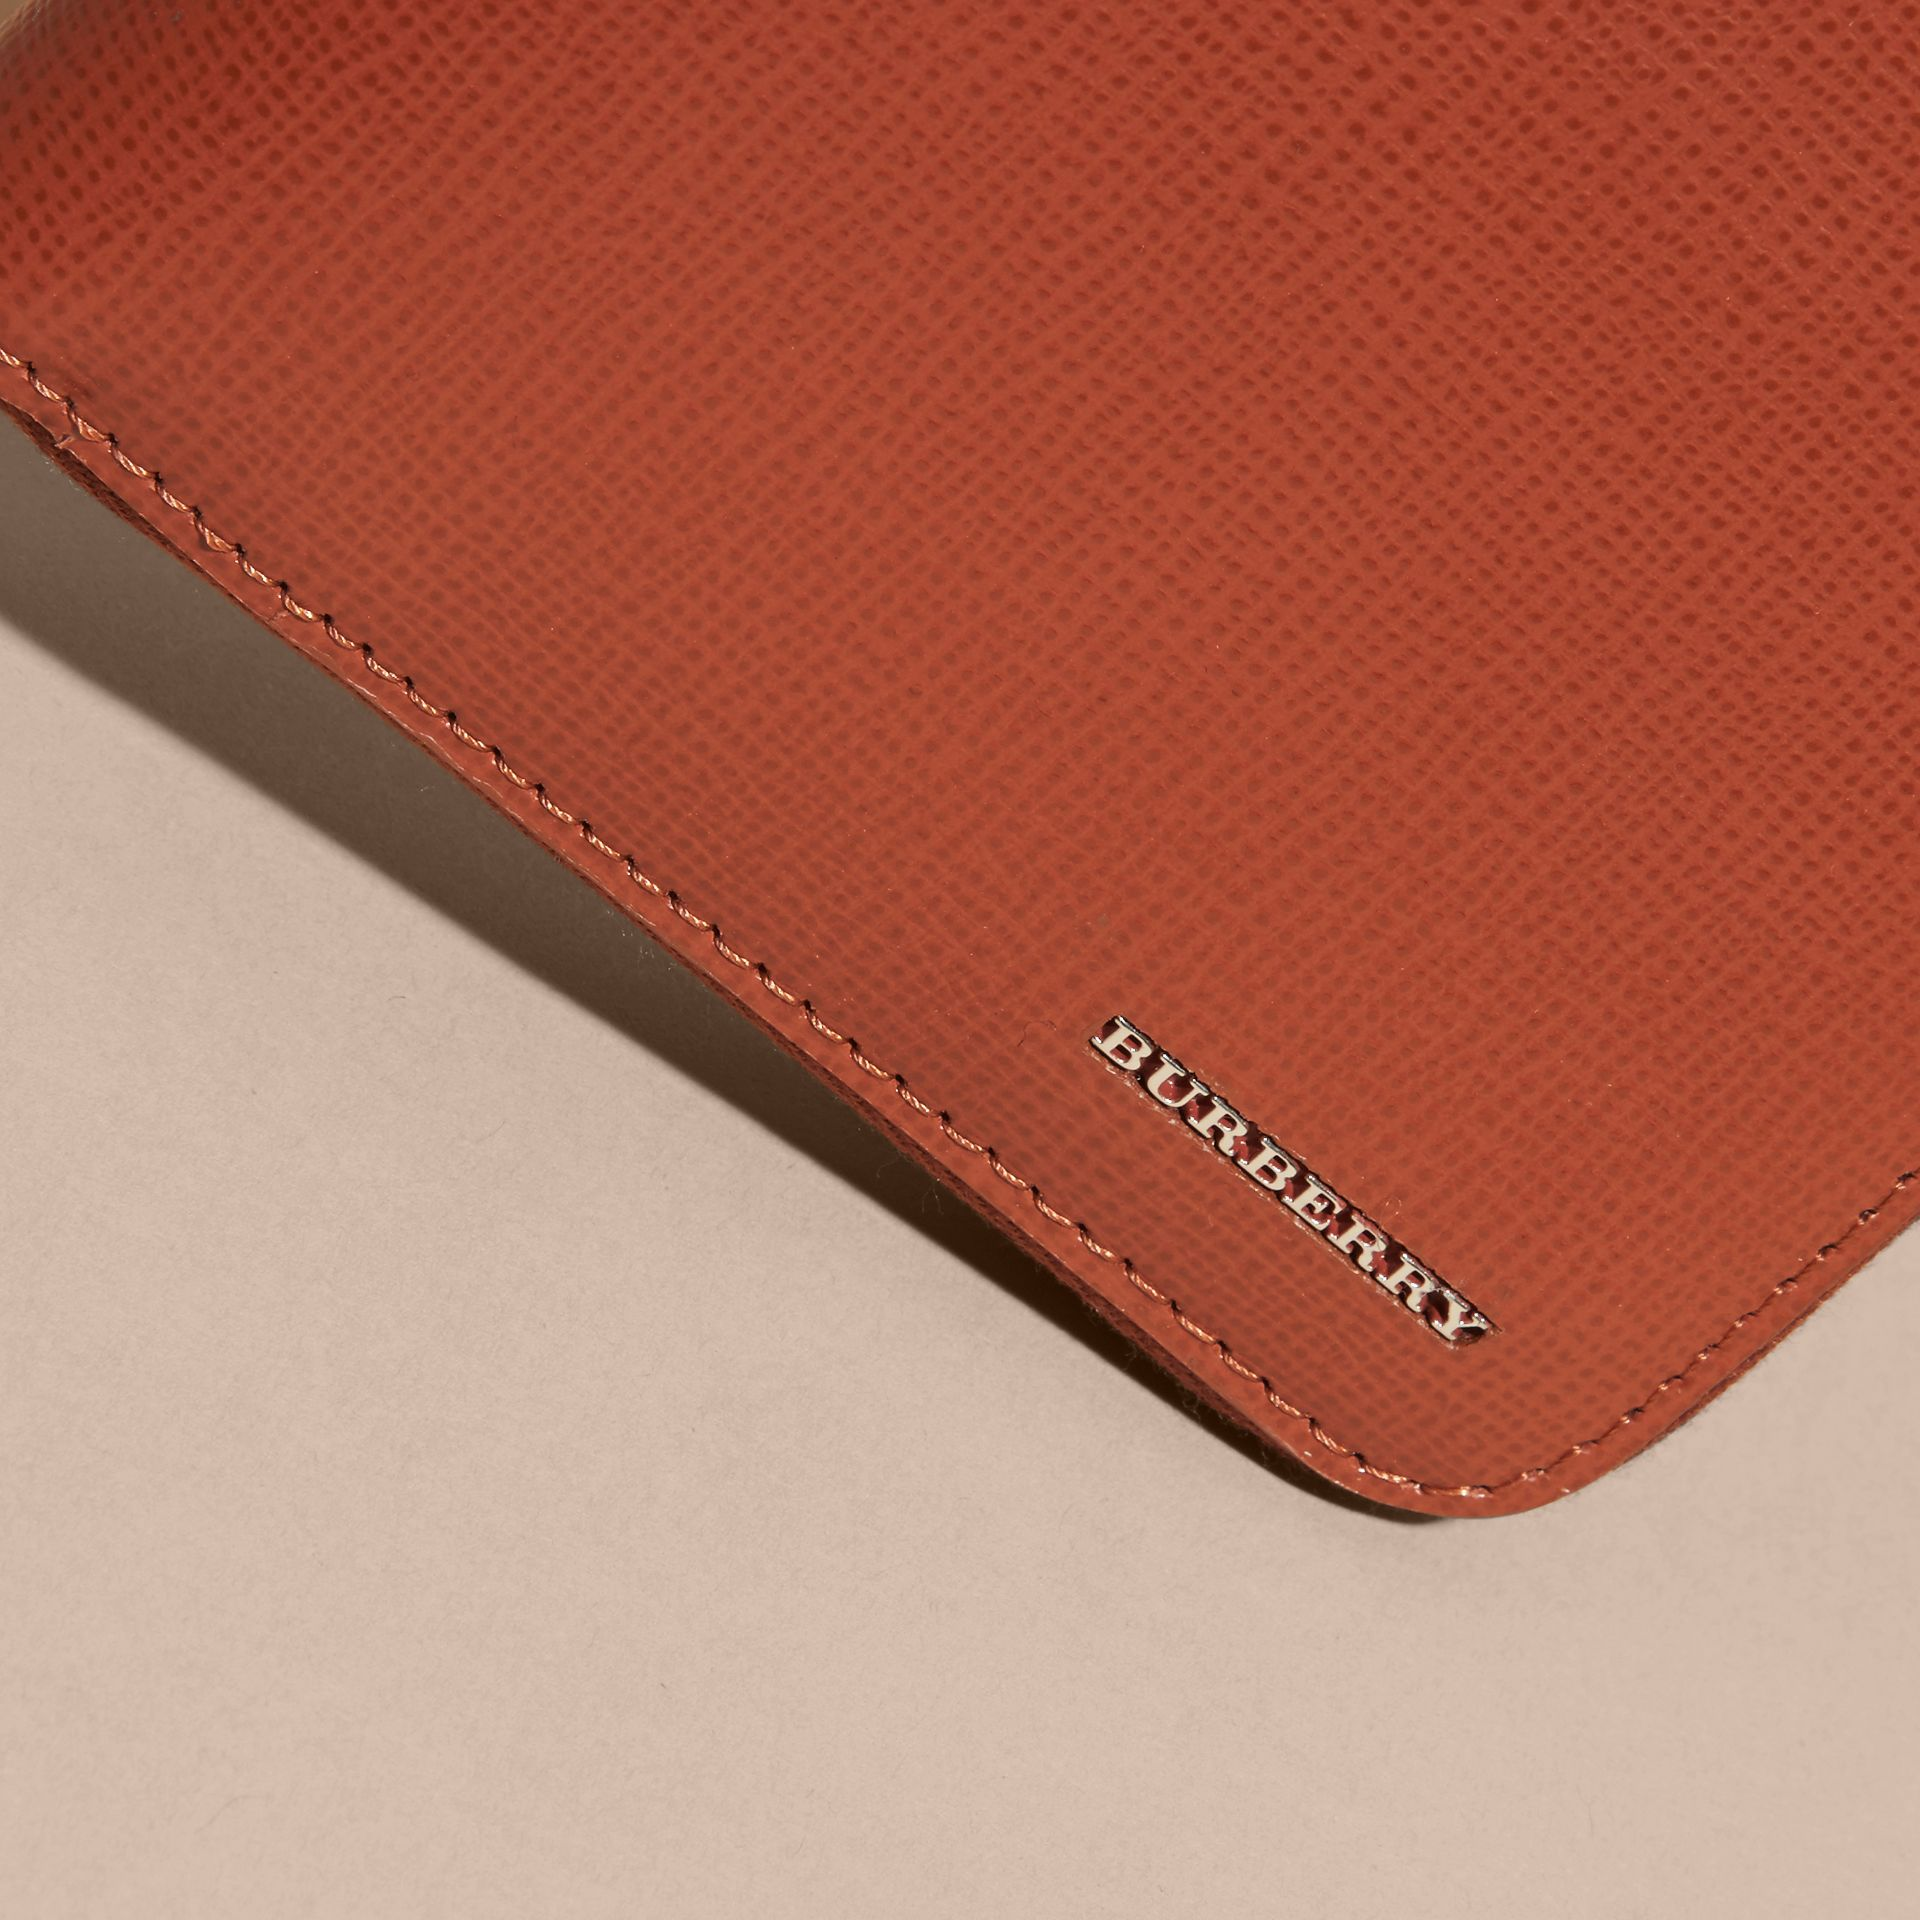 Burnt sienna London Leather Ziparound Wallet Burnt Sienna - gallery image 3